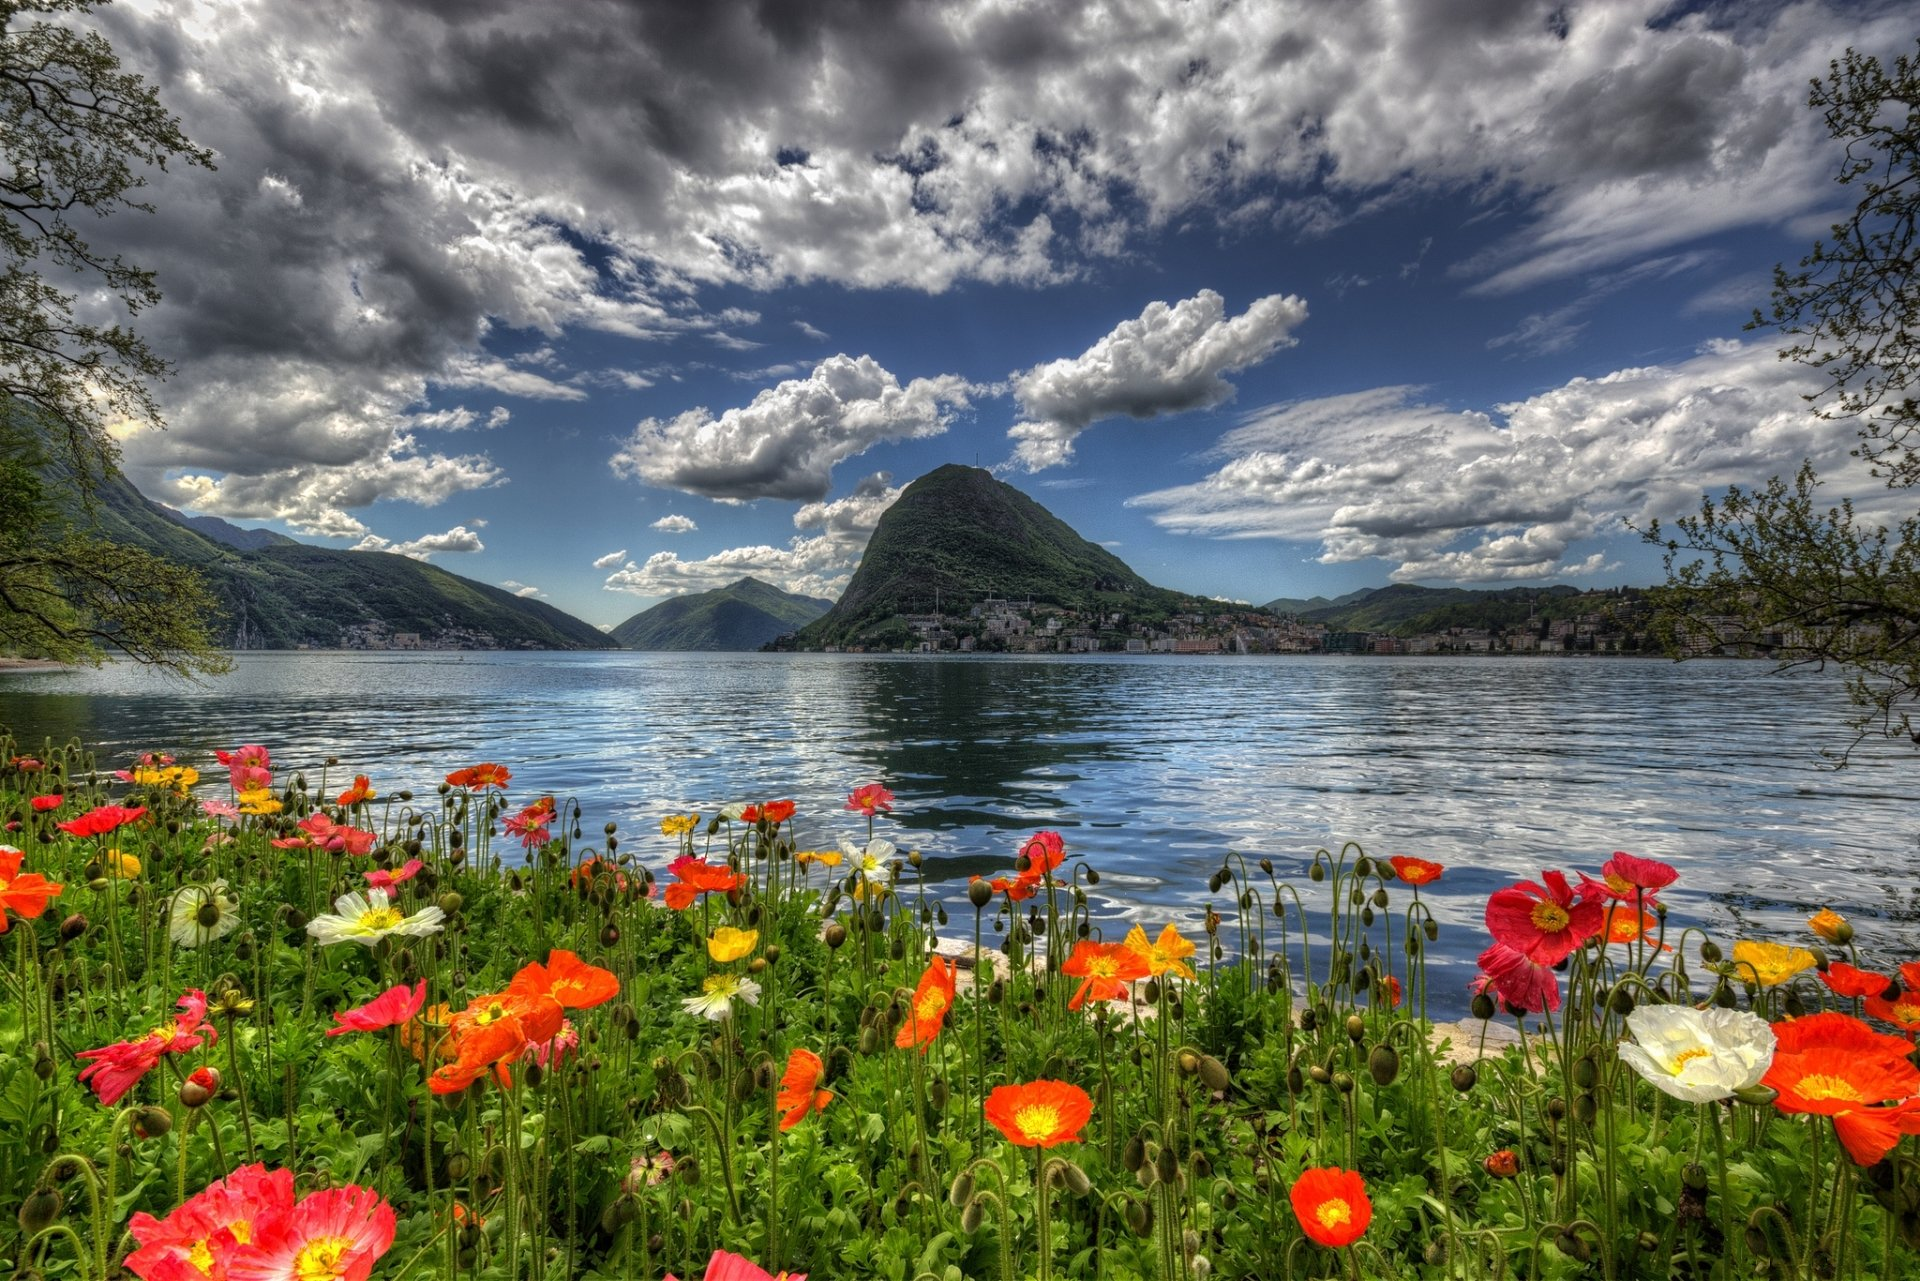 flowers by lake in switzerland hd wallpaper background